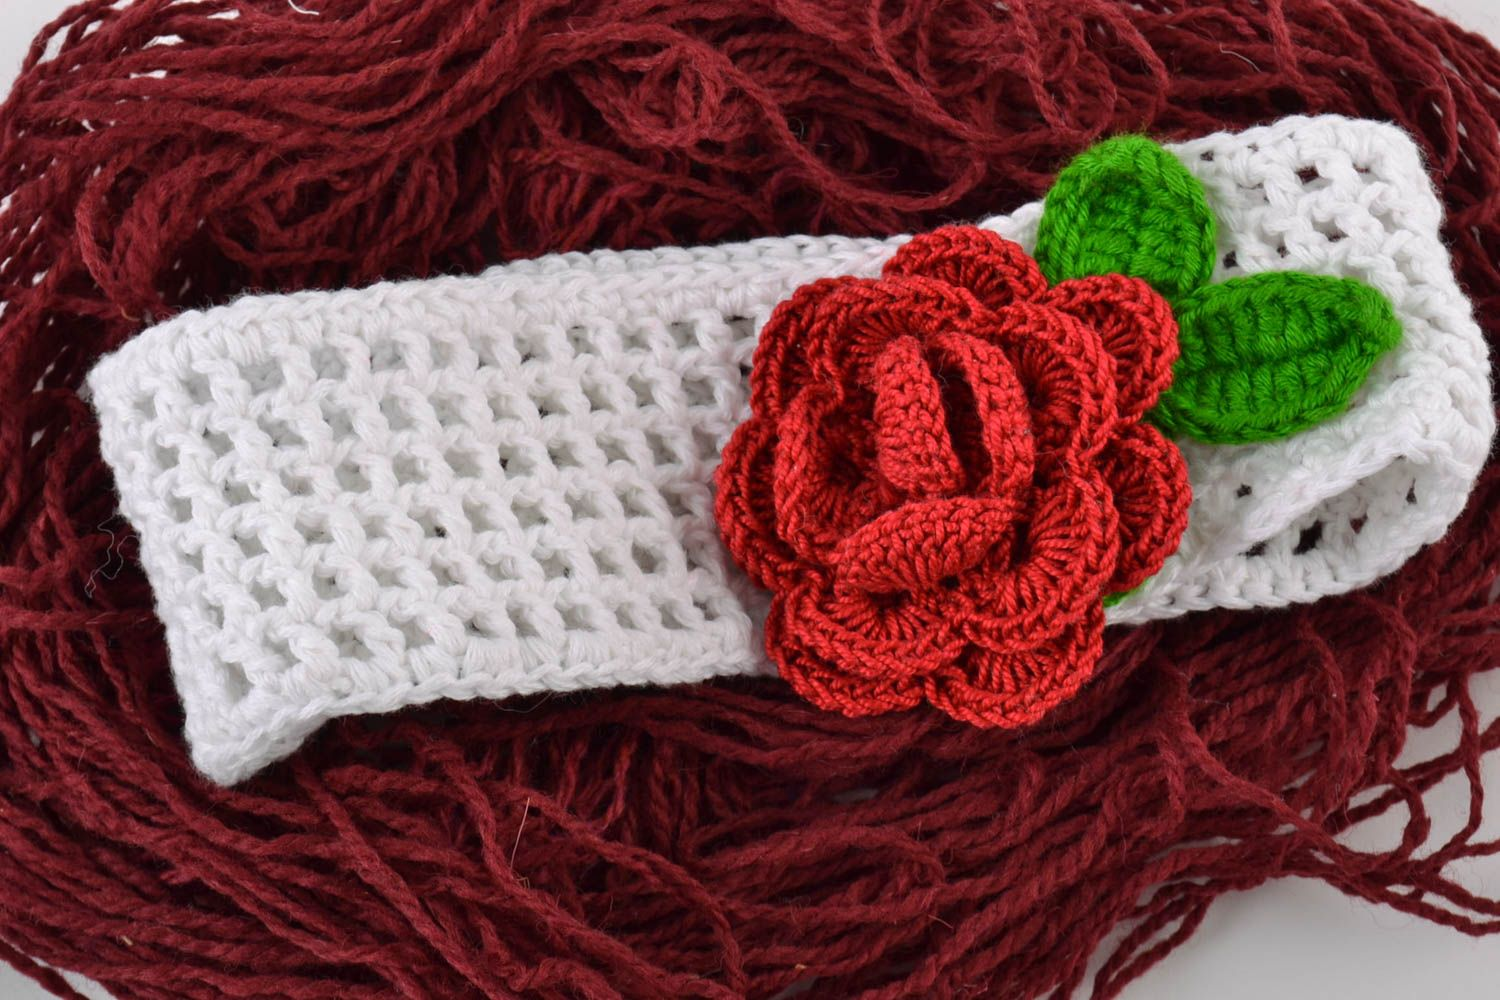 Handmade wide lacy crochet white headband with volume red flower for baby girl photo 1